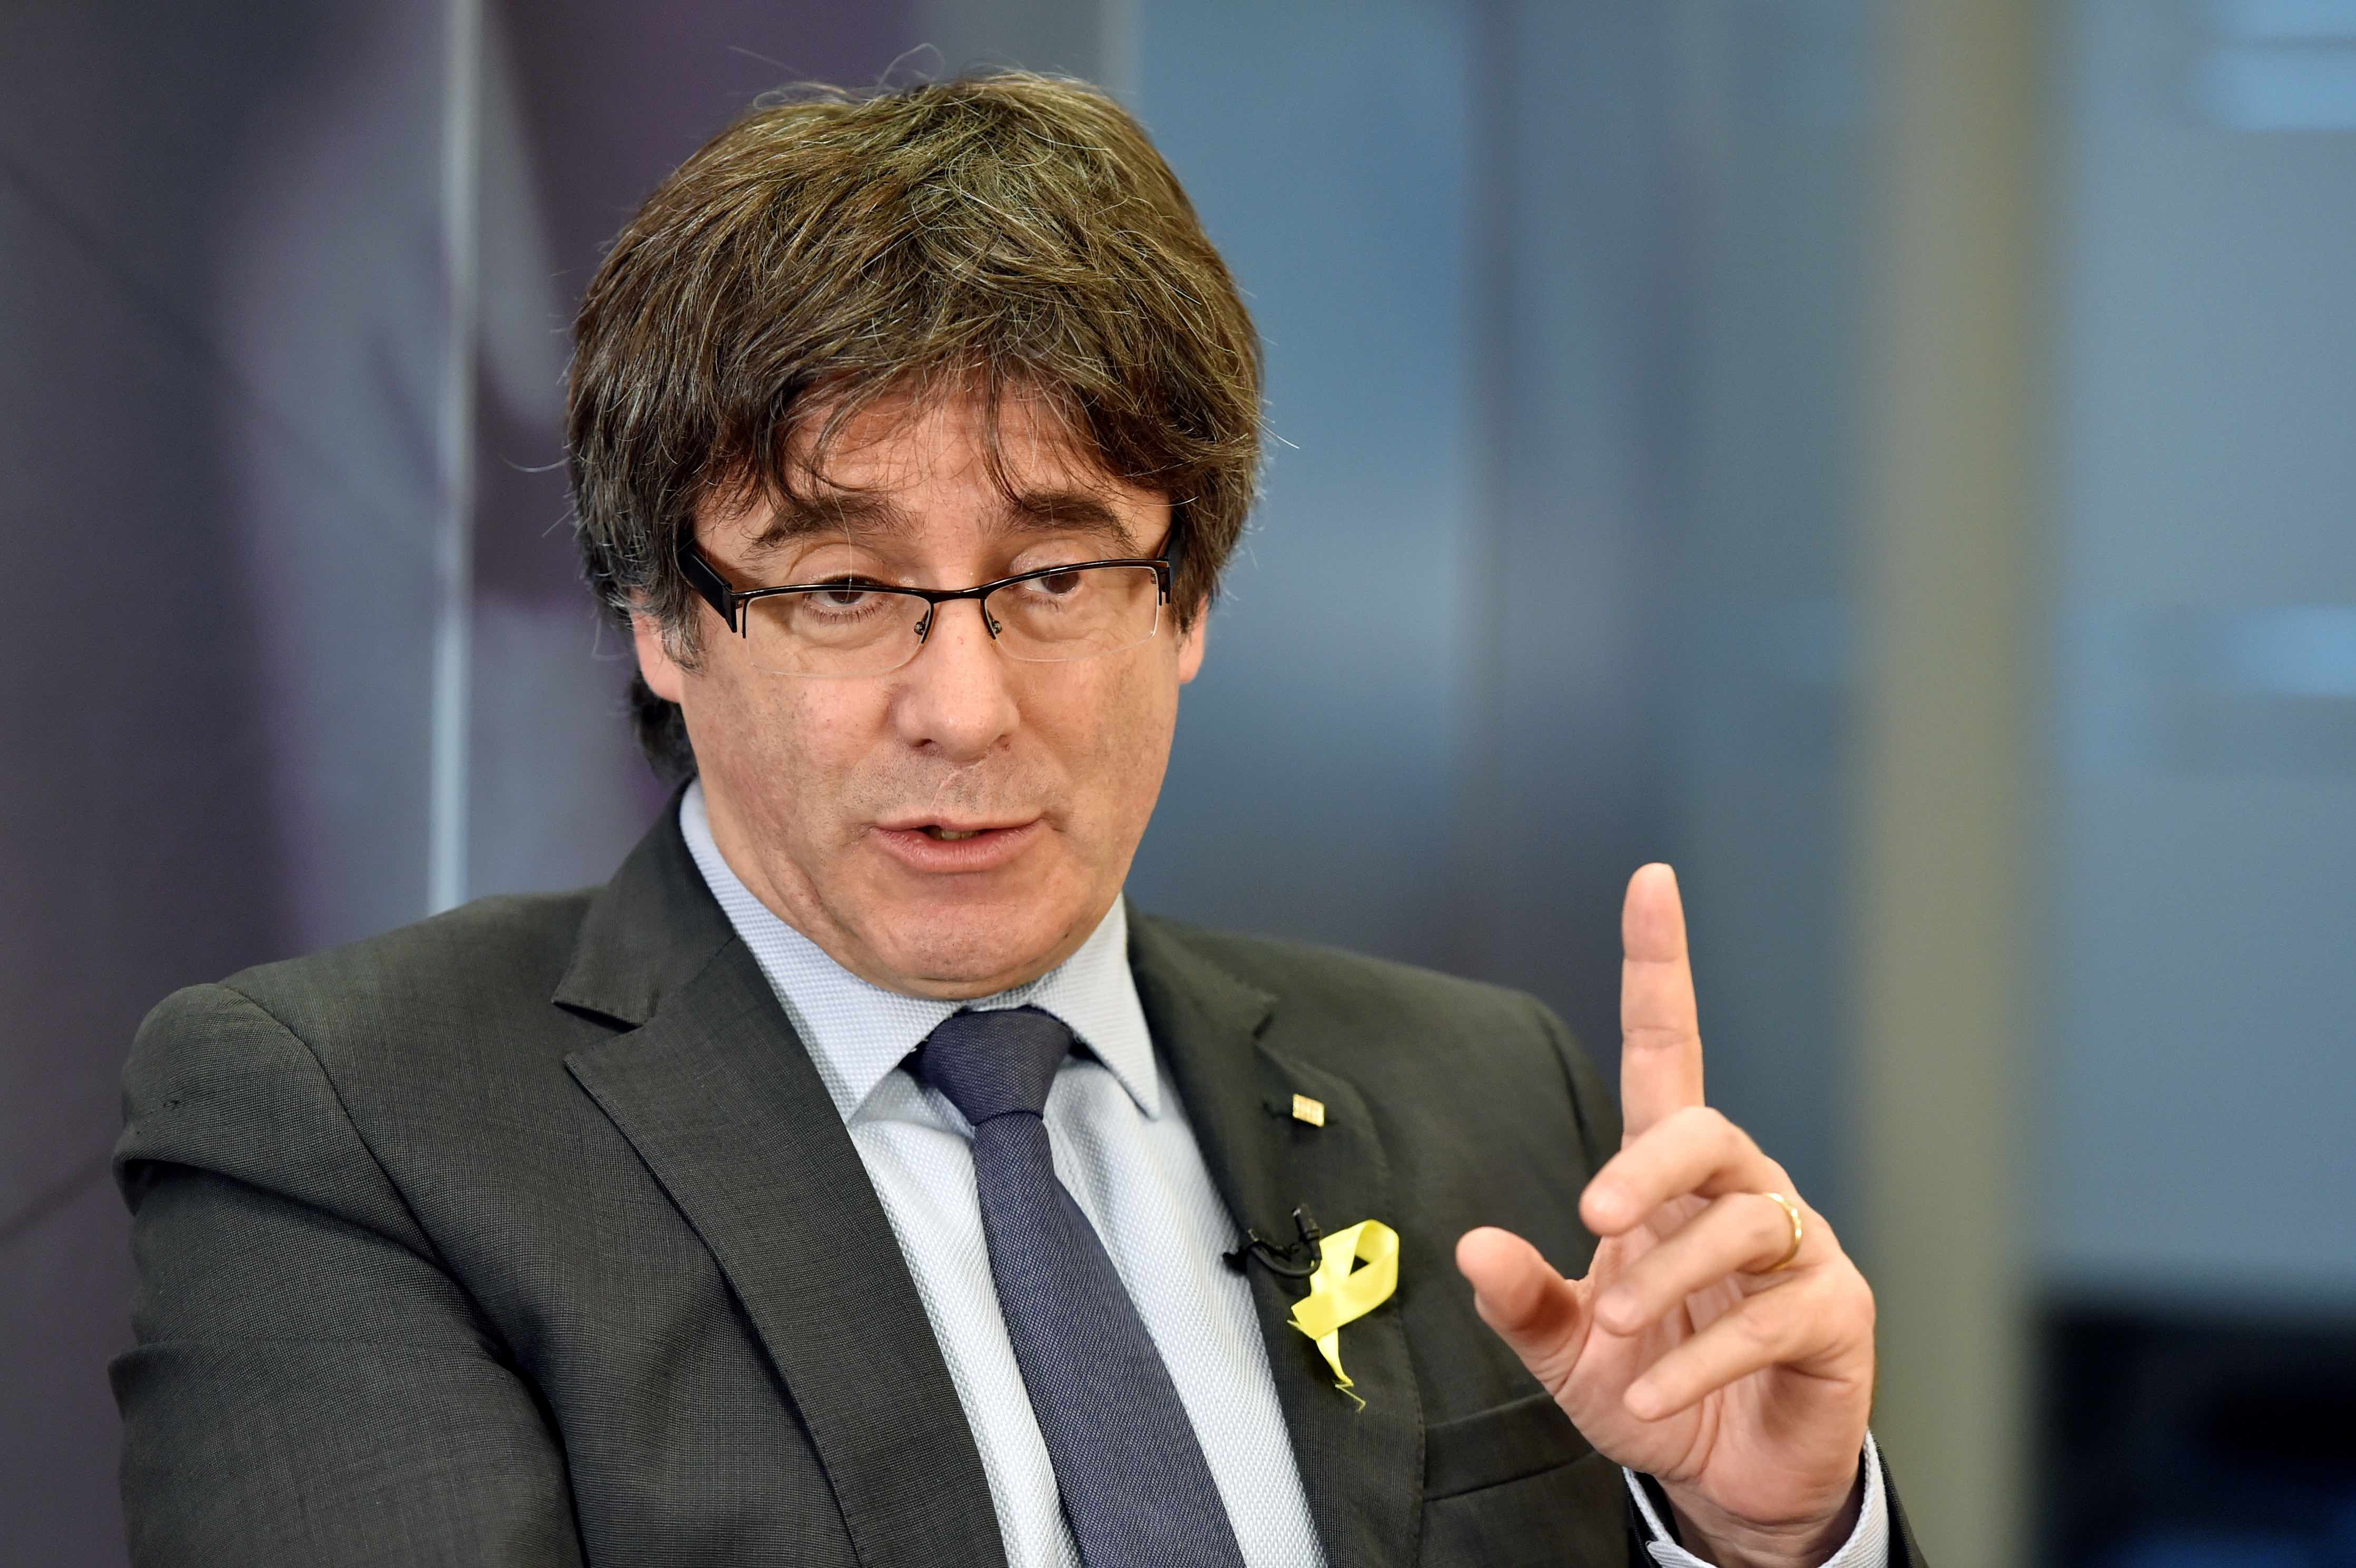 Catalan Leader Tells Spain He Wants to Come Back